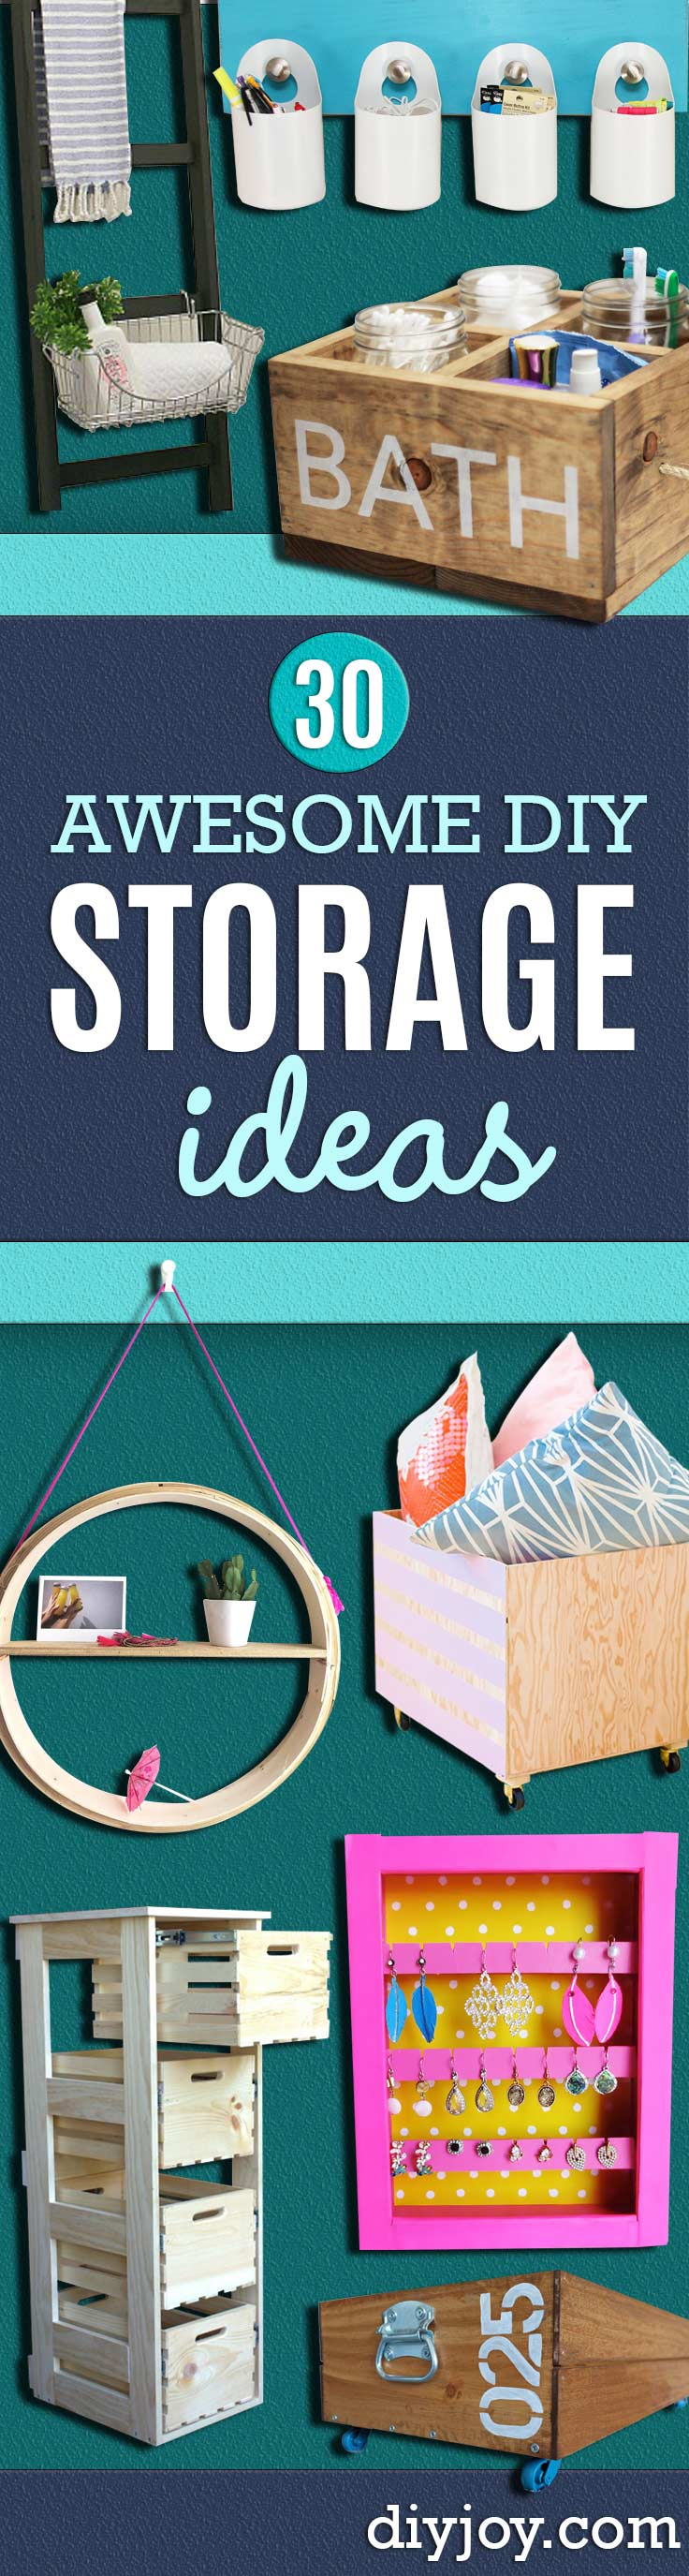 DIY Storage Ideas - Home Decor and Organizing Projects for The Bedroom, Bathroom, Living Room, Panty and Storage Projects - Tutorials and Step by Step Instructions for Do It Yourself Organization